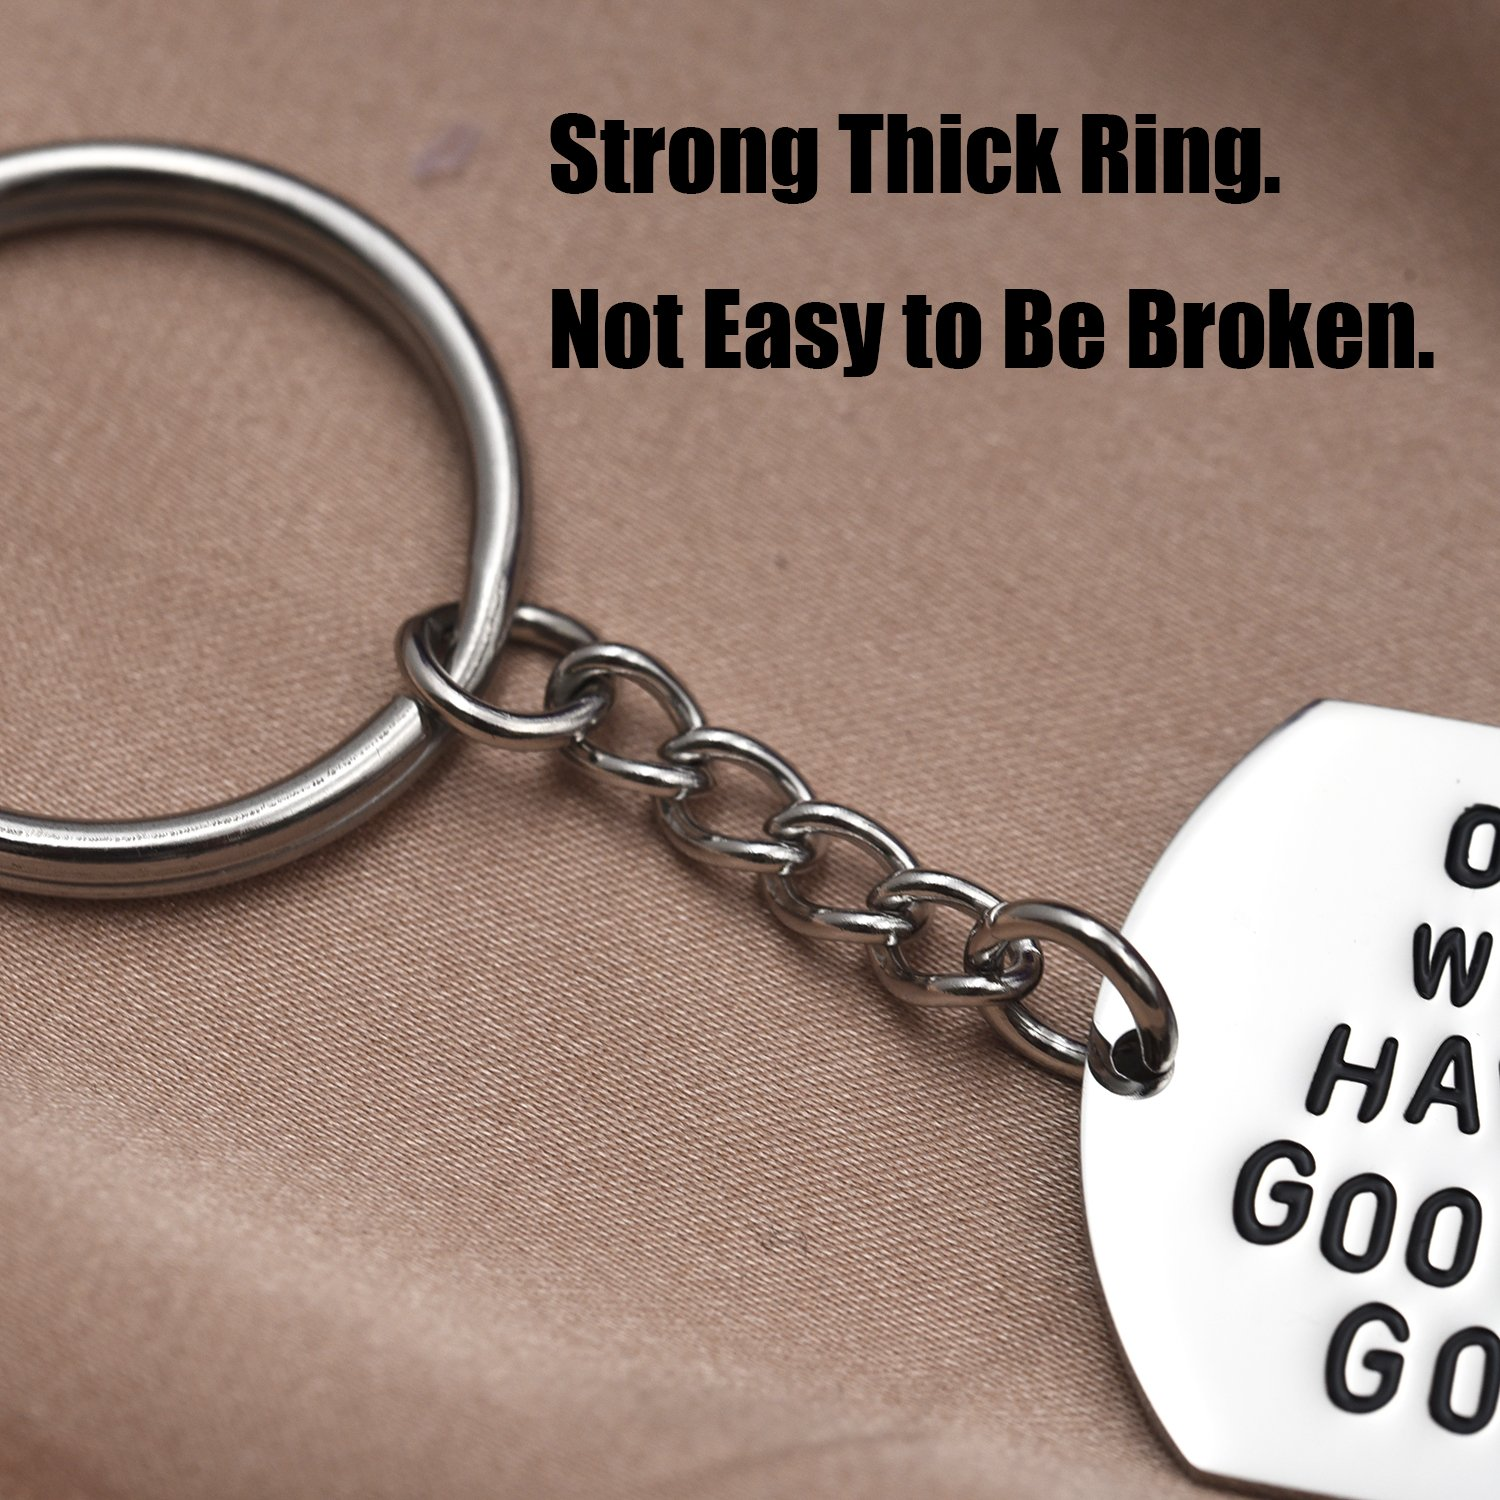 LParkin One Day We Will Never Have to Say Goodbye Long Distance Relationship Gifts Keychain/Necklace Love Quote Valentines Gift (Keychain) by LParkin (Image #4)